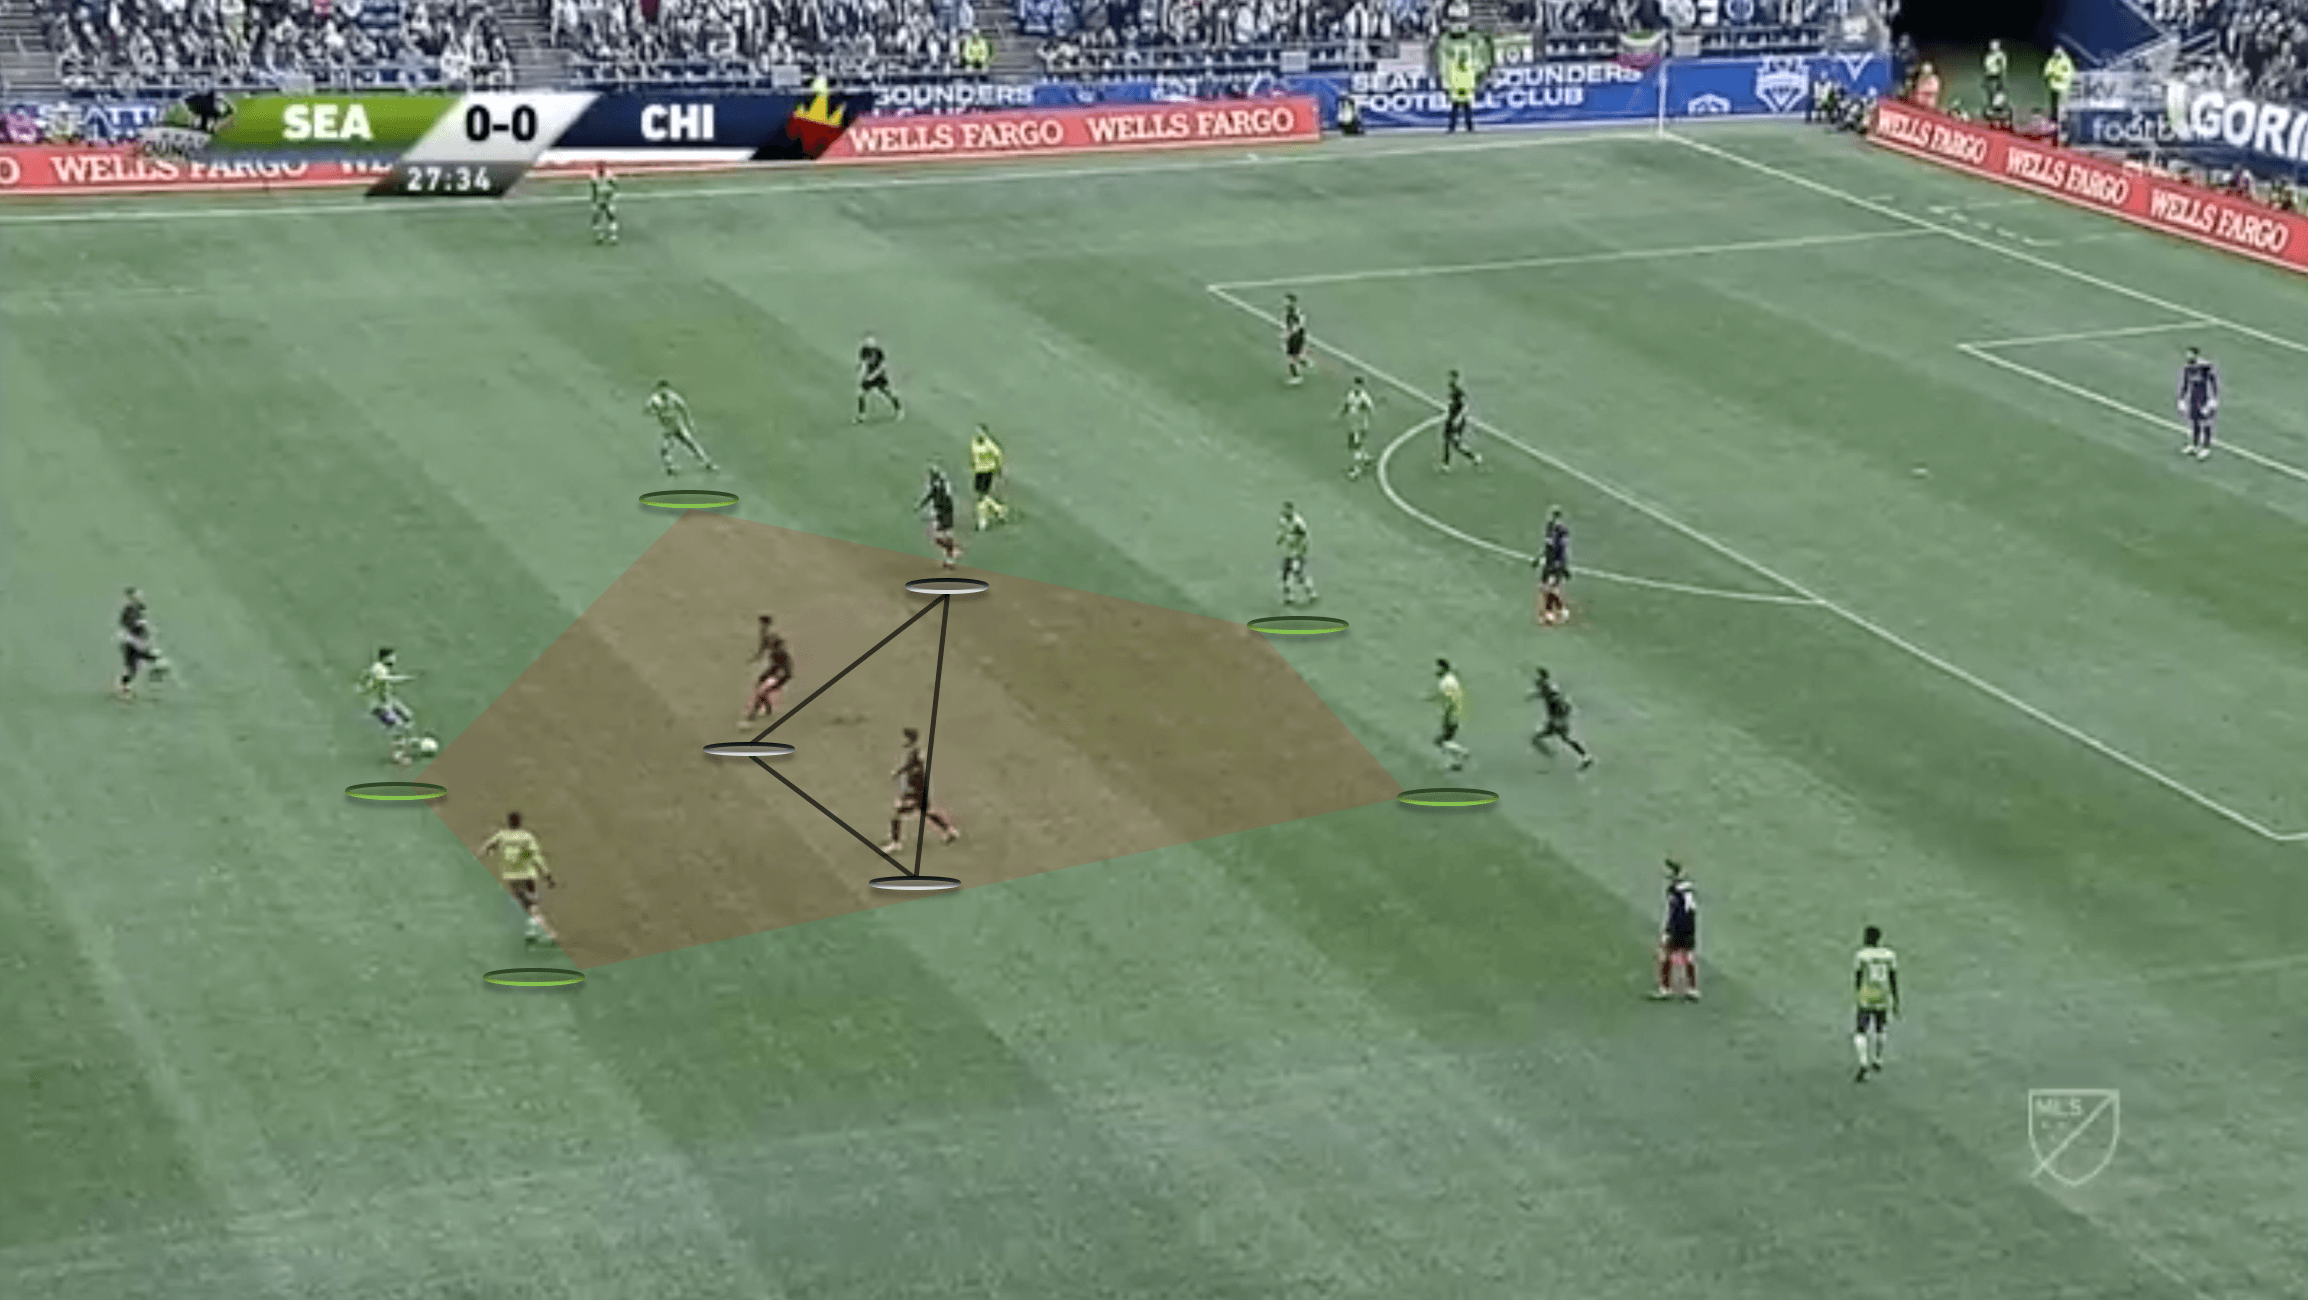 MLS 2020: Seattle Sounders vs Chicago Fire - tactical analysis tactics